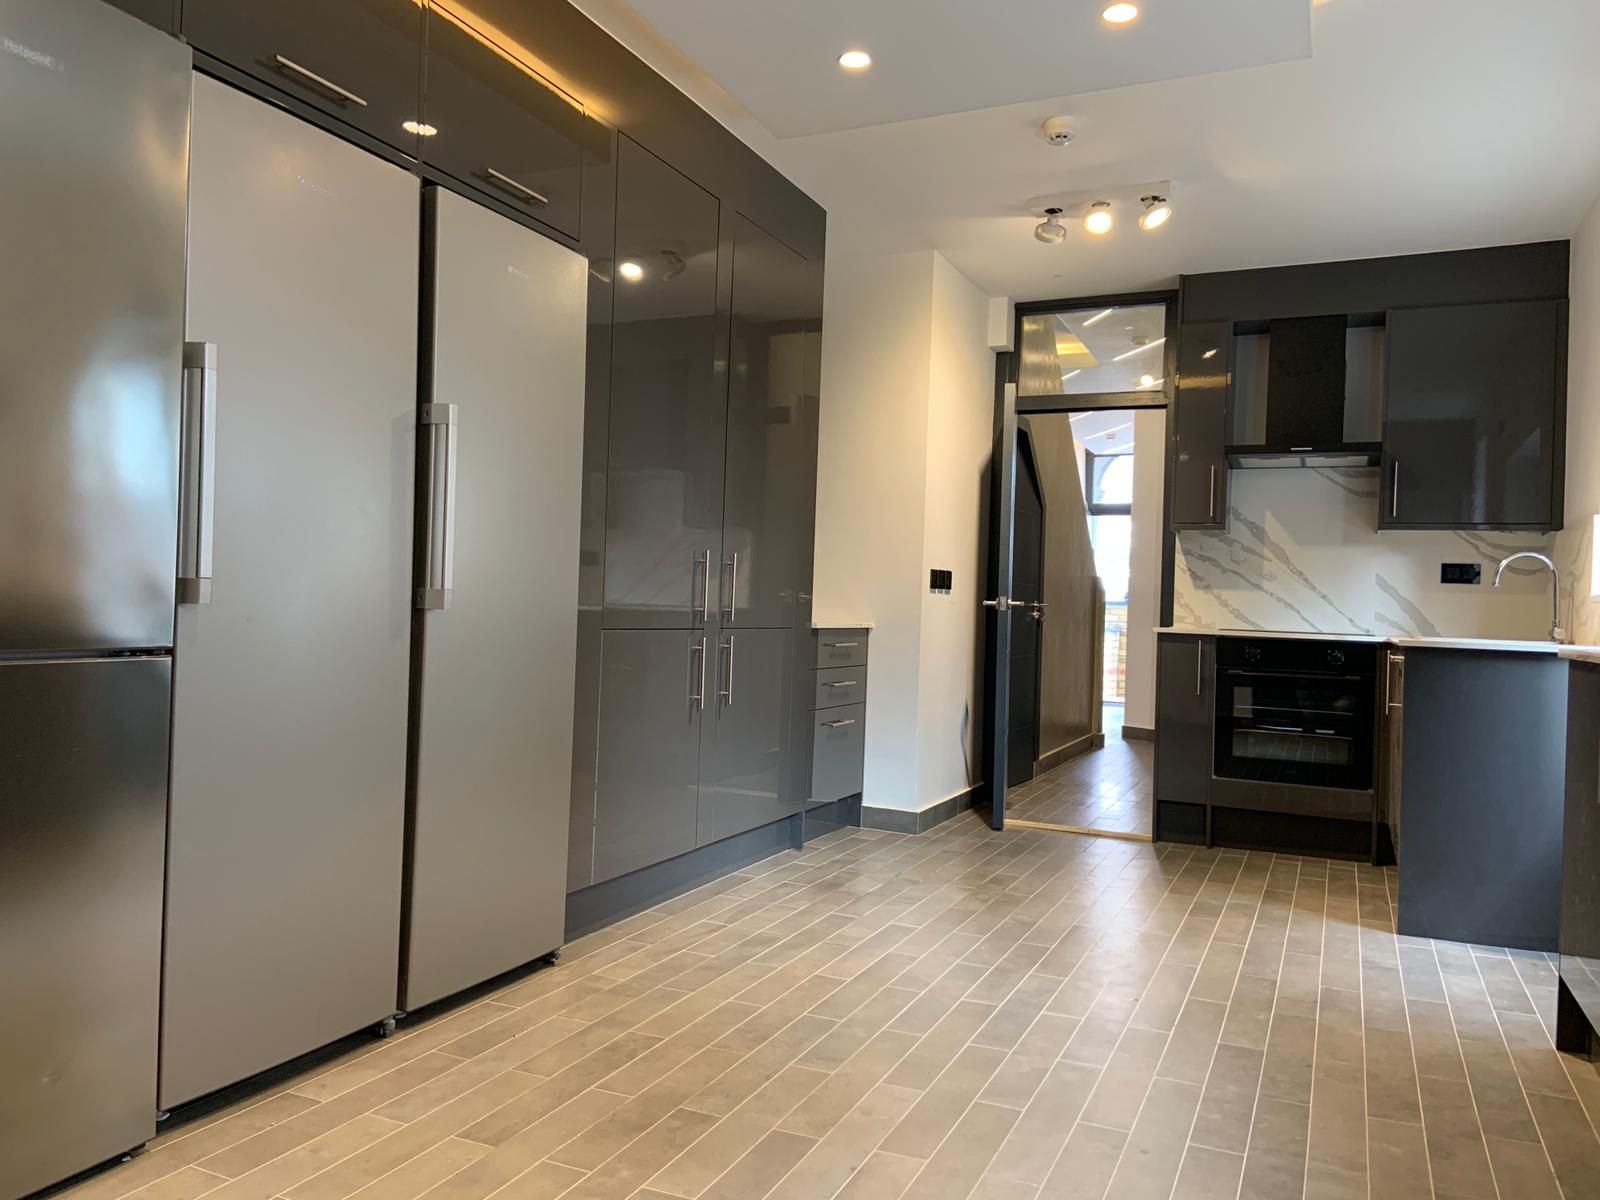 1 bedroom shared house To Let in Willesden Green - Communal kitchen